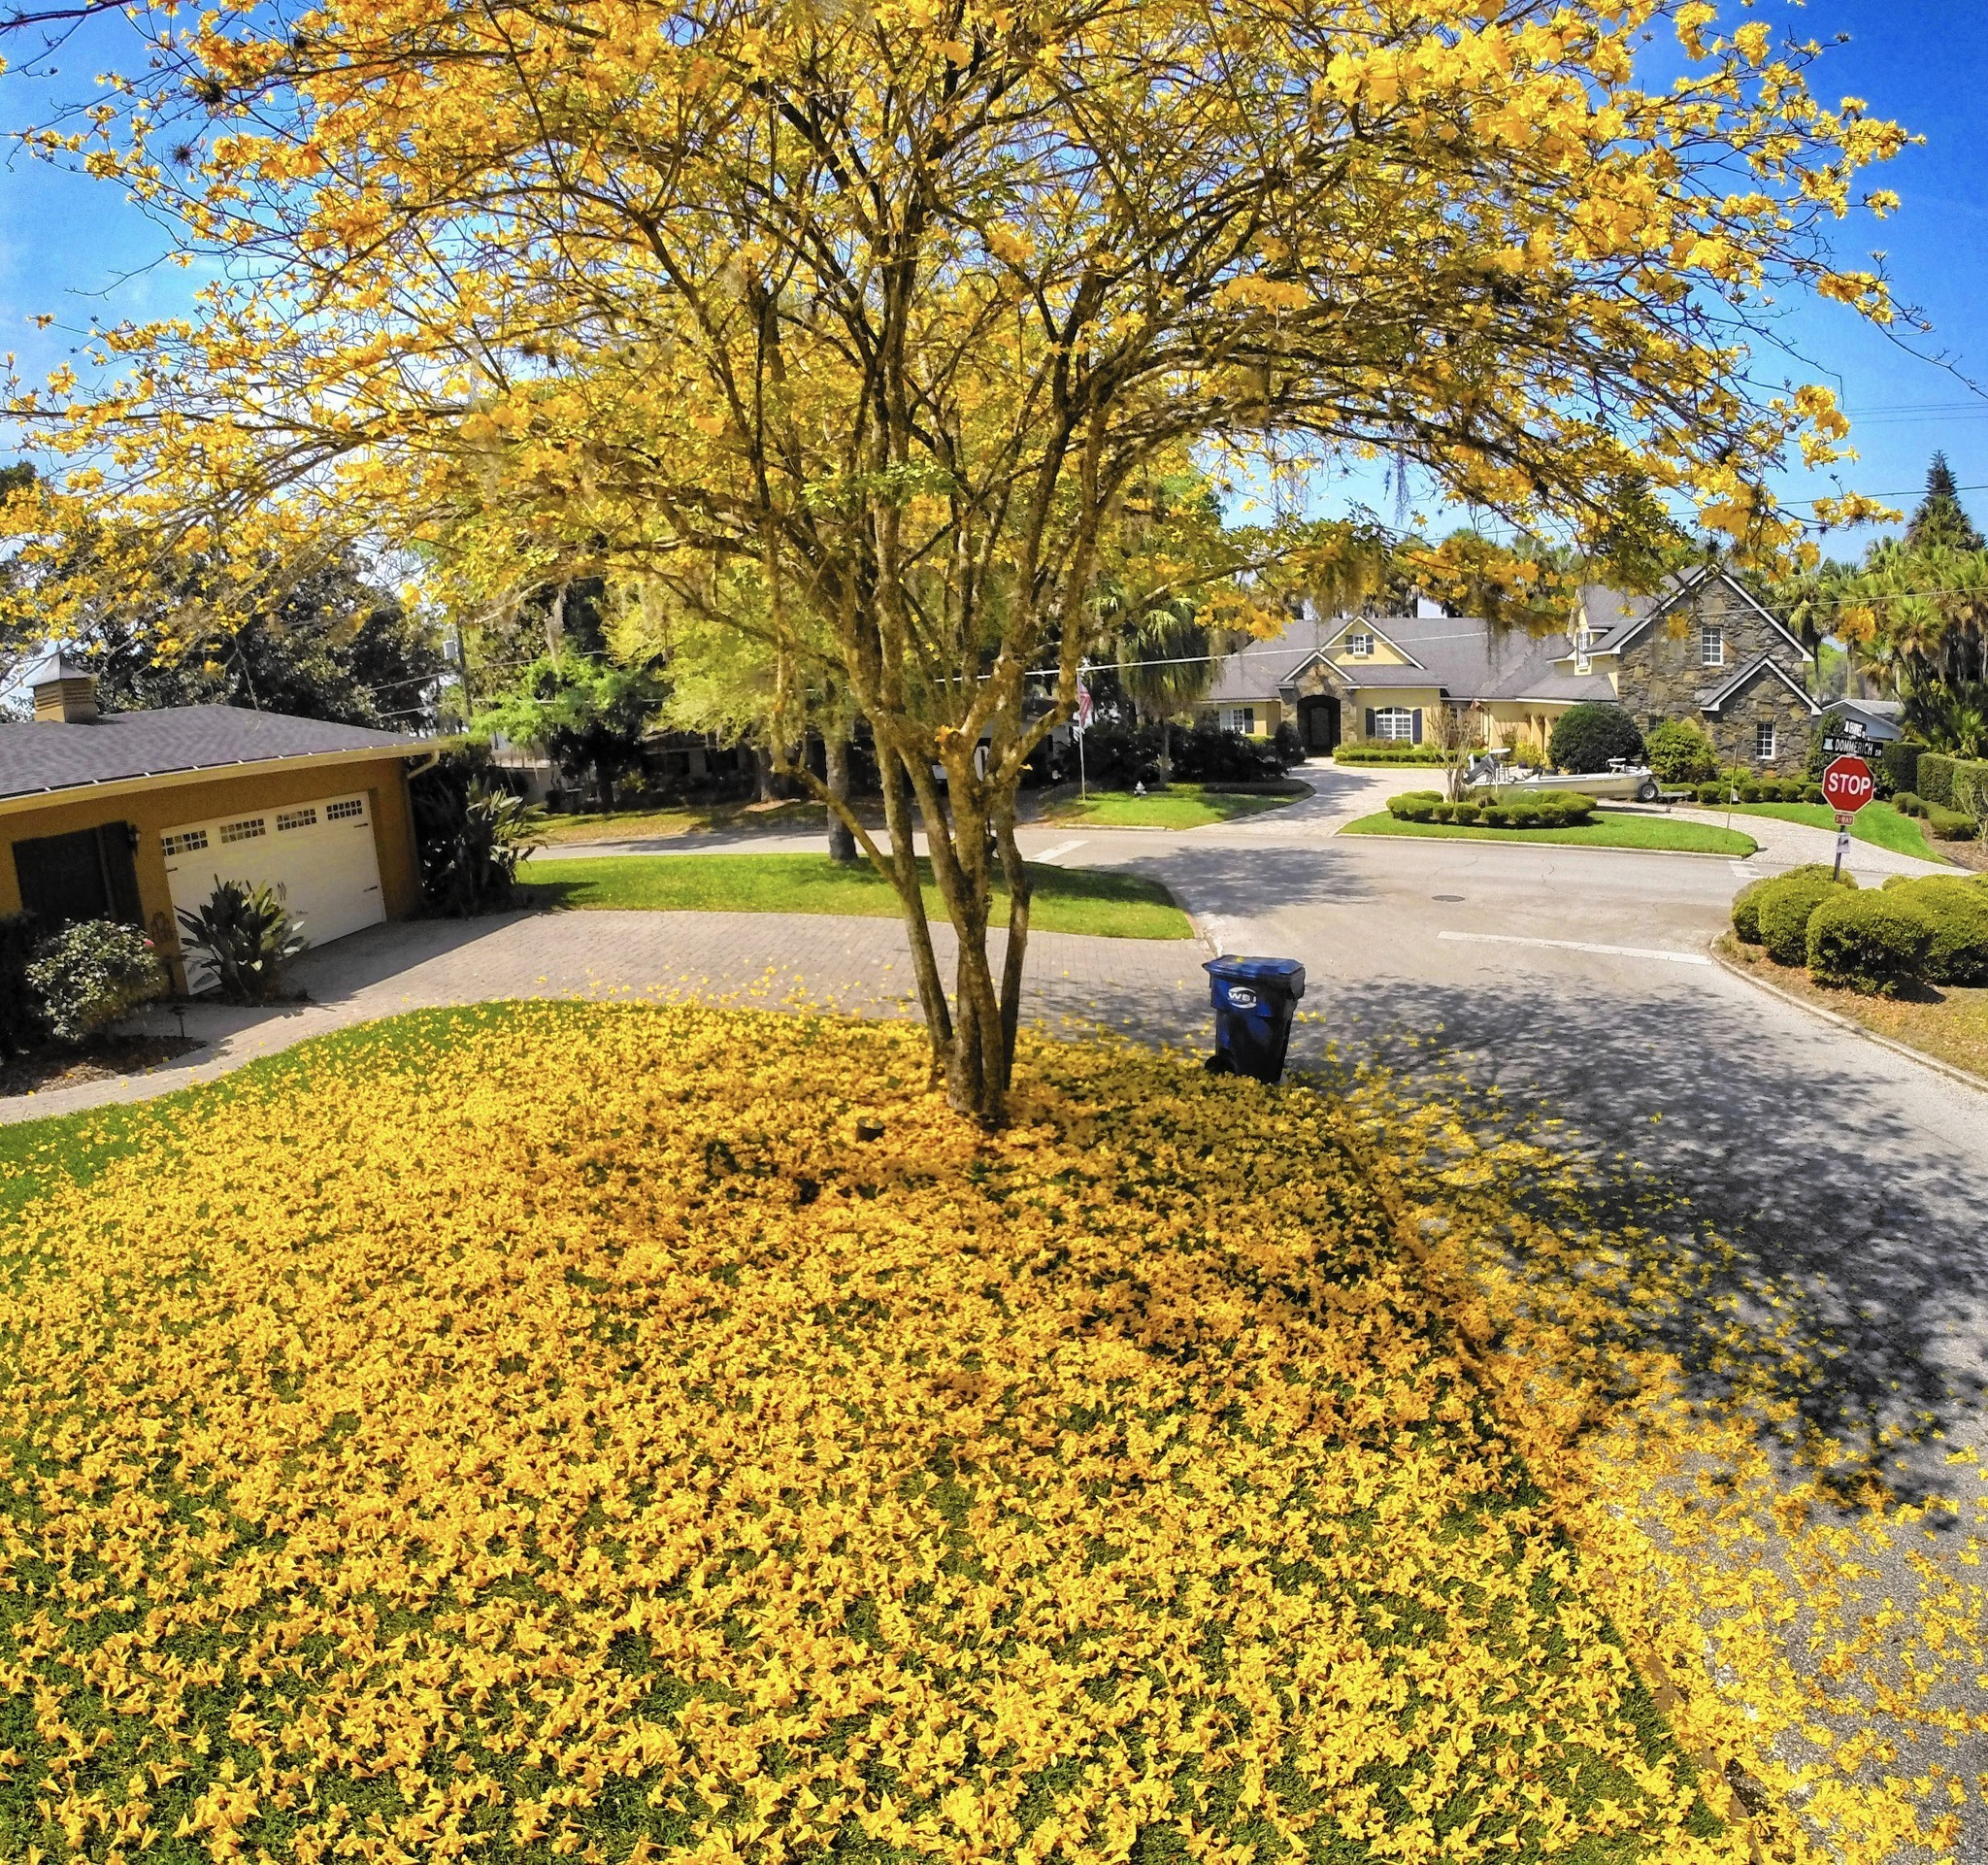 Tabebuias In Central Florida Erupt In Yellow Blossoms Orlando Sentinel